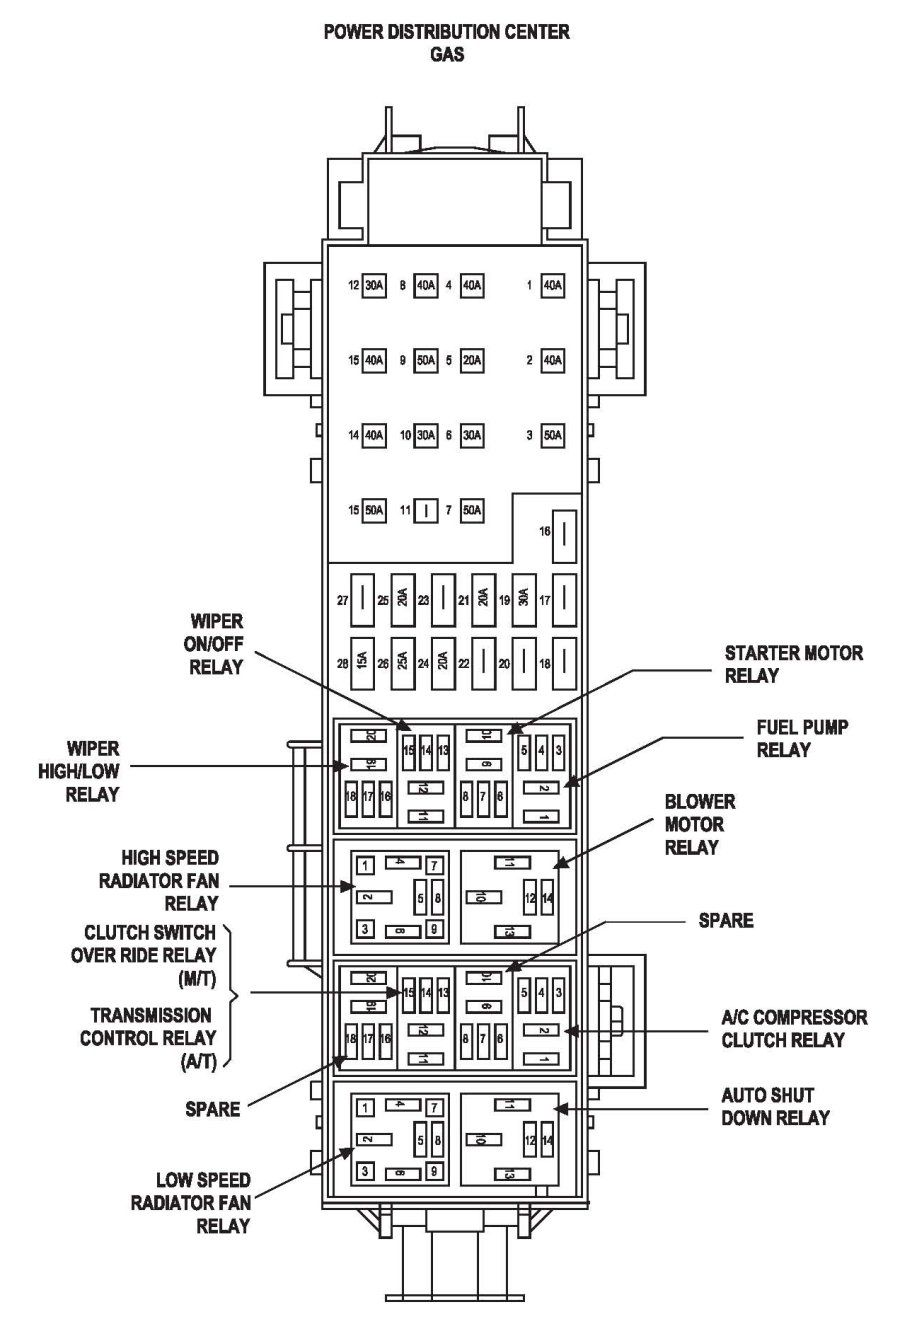 b3536c3739783eb19f827744cc42c3c4 jeep liberty fuse box diagram image details jeep liberty jeep tj fuse box diagram at gsmx.co